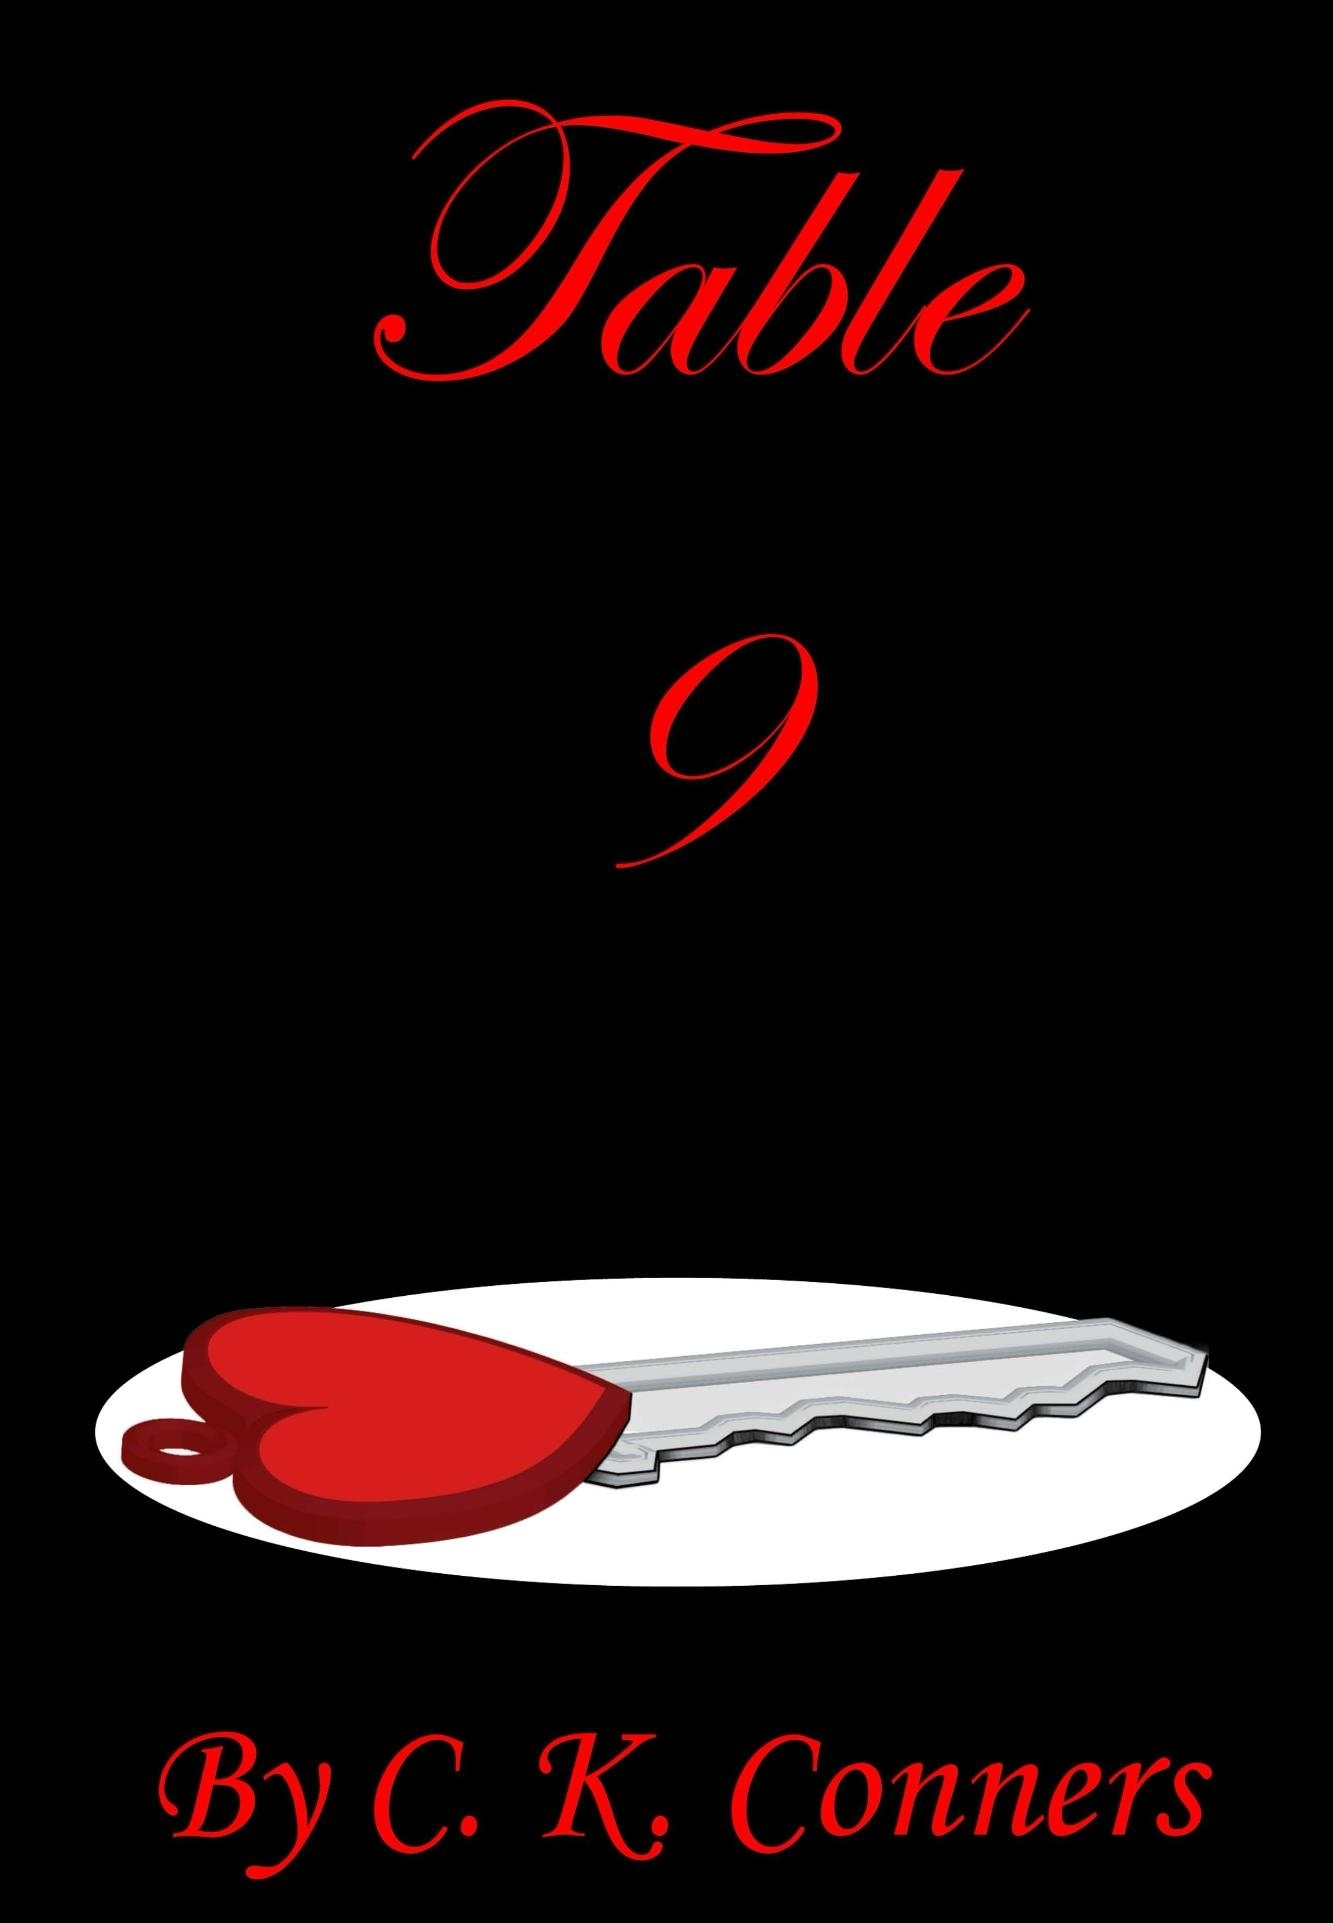 Table 9 - Available in Paperback and Ebook Formats© 2015 by C. K. Conners